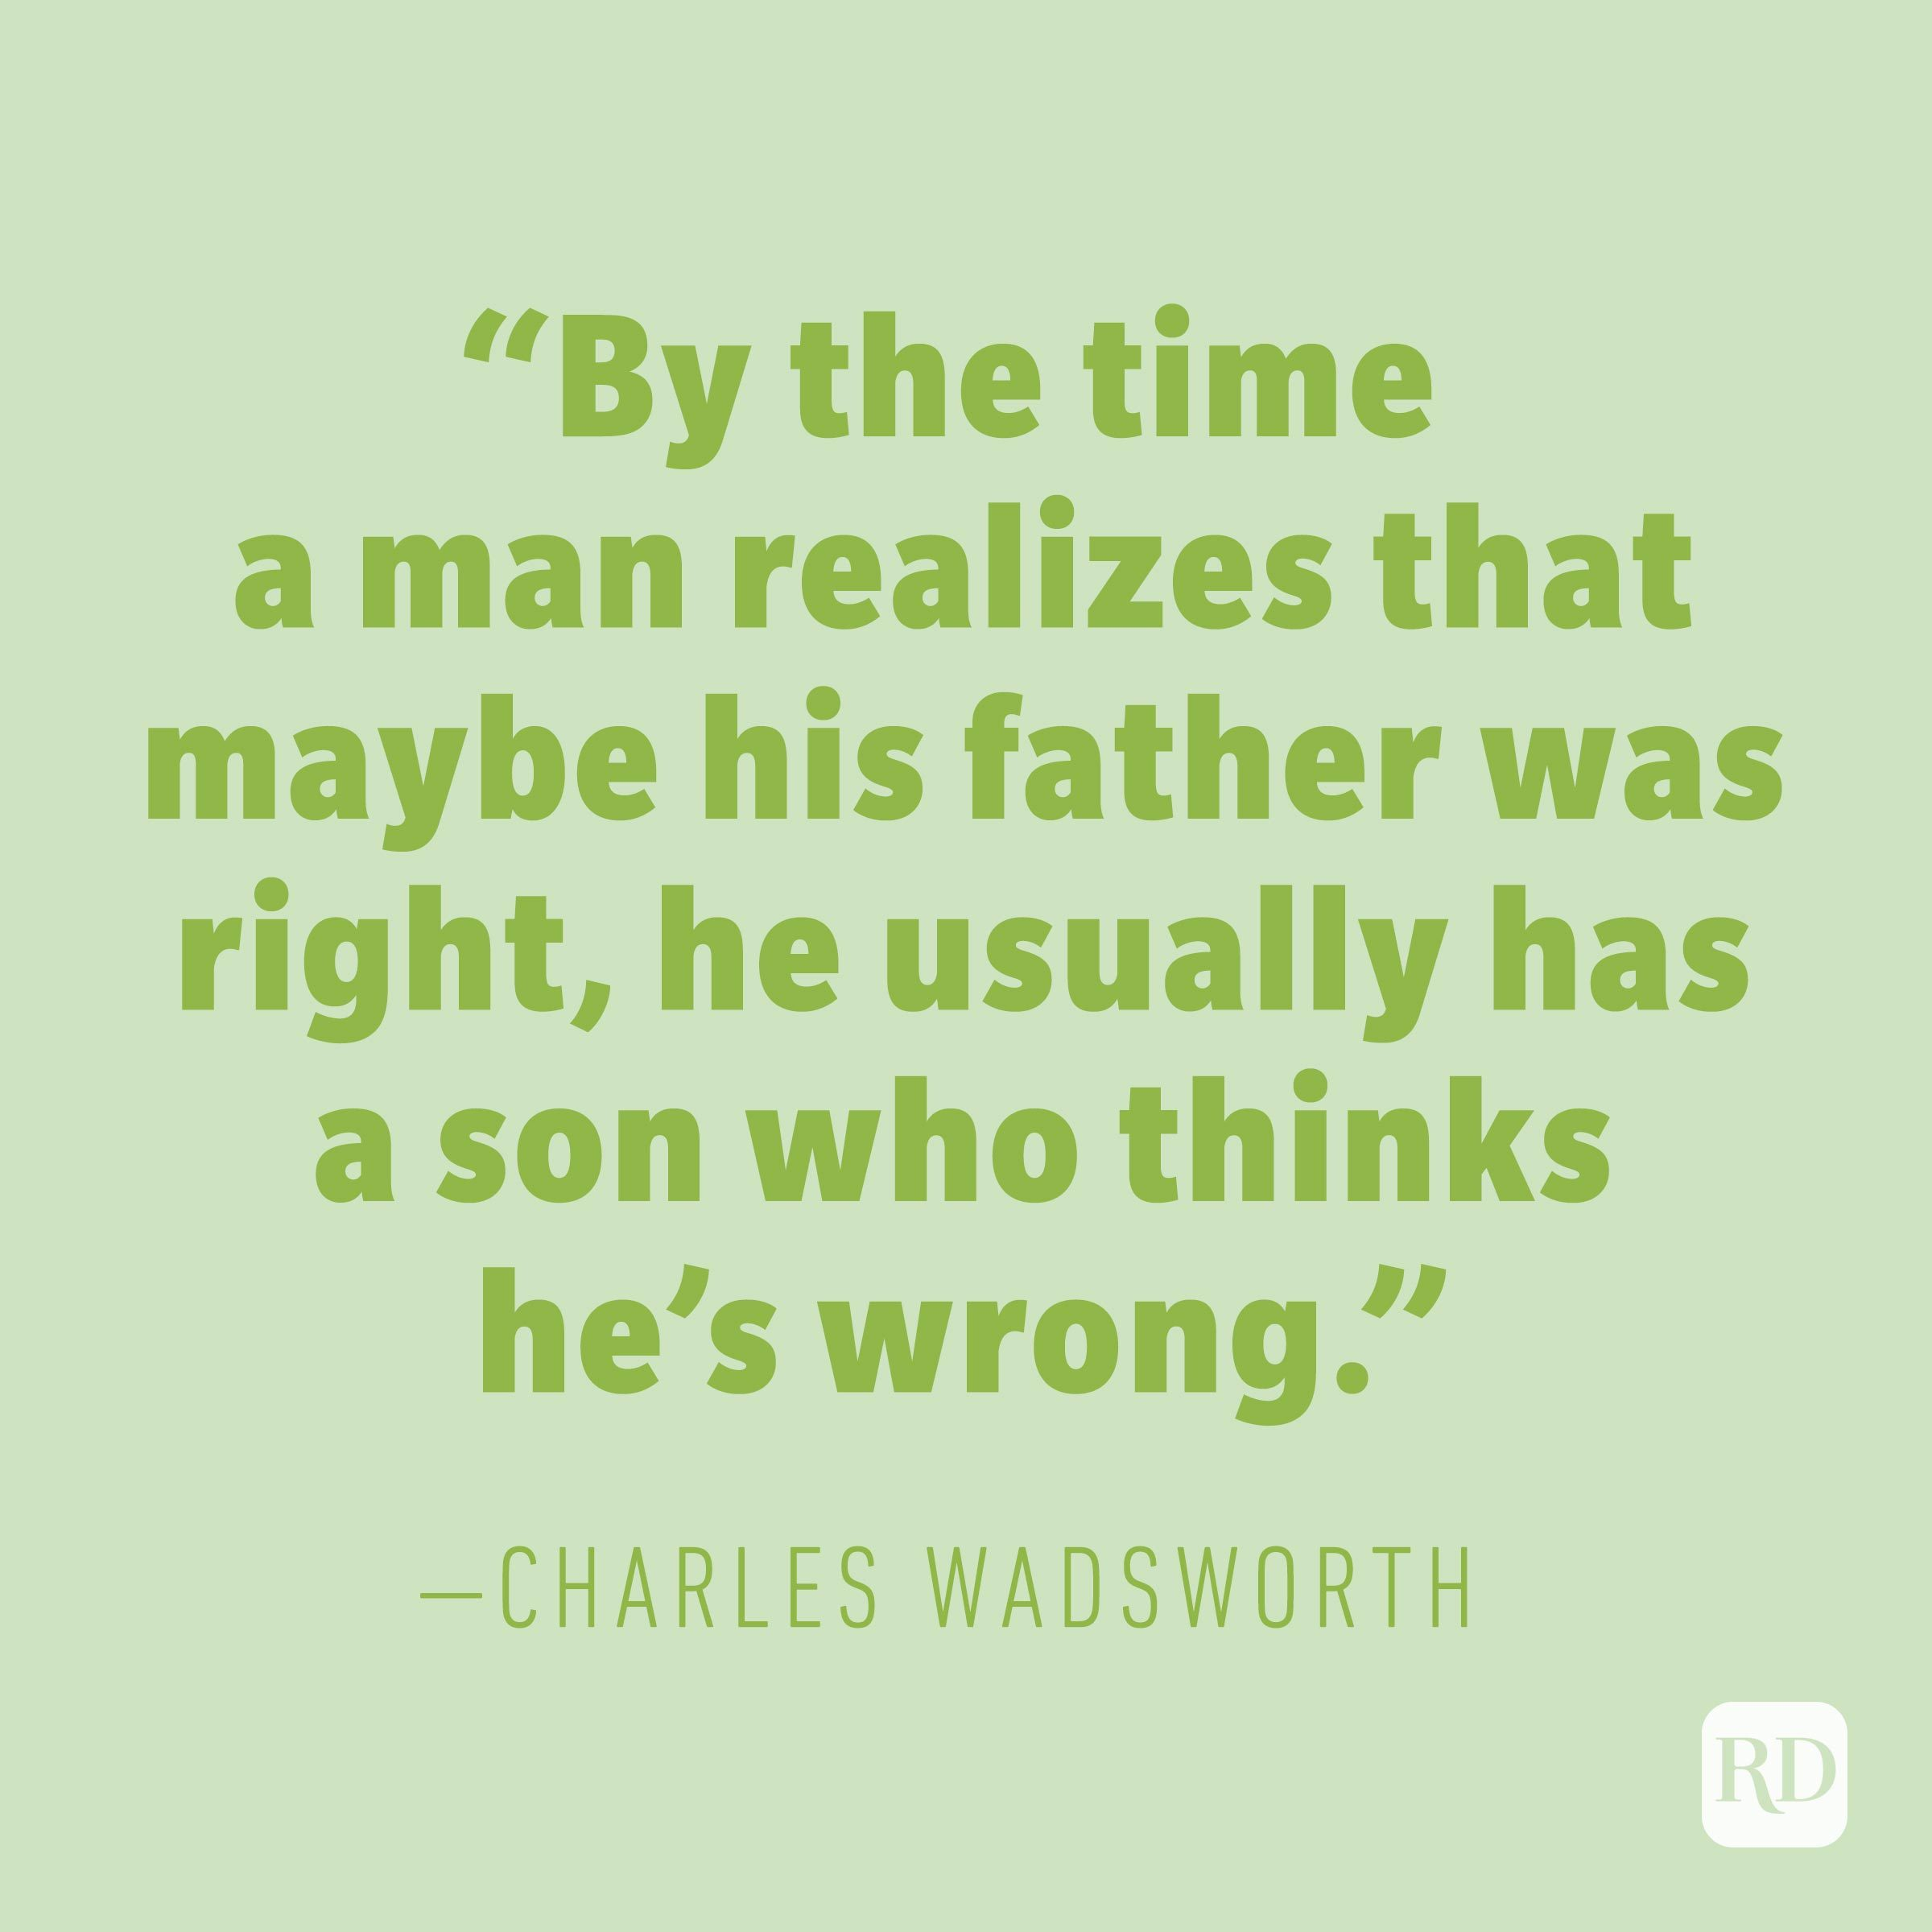 """By the time a man realizes that maybe his father was right, he usually has a son who thinks he's wrong."" —CHARLES WADSWORTH"